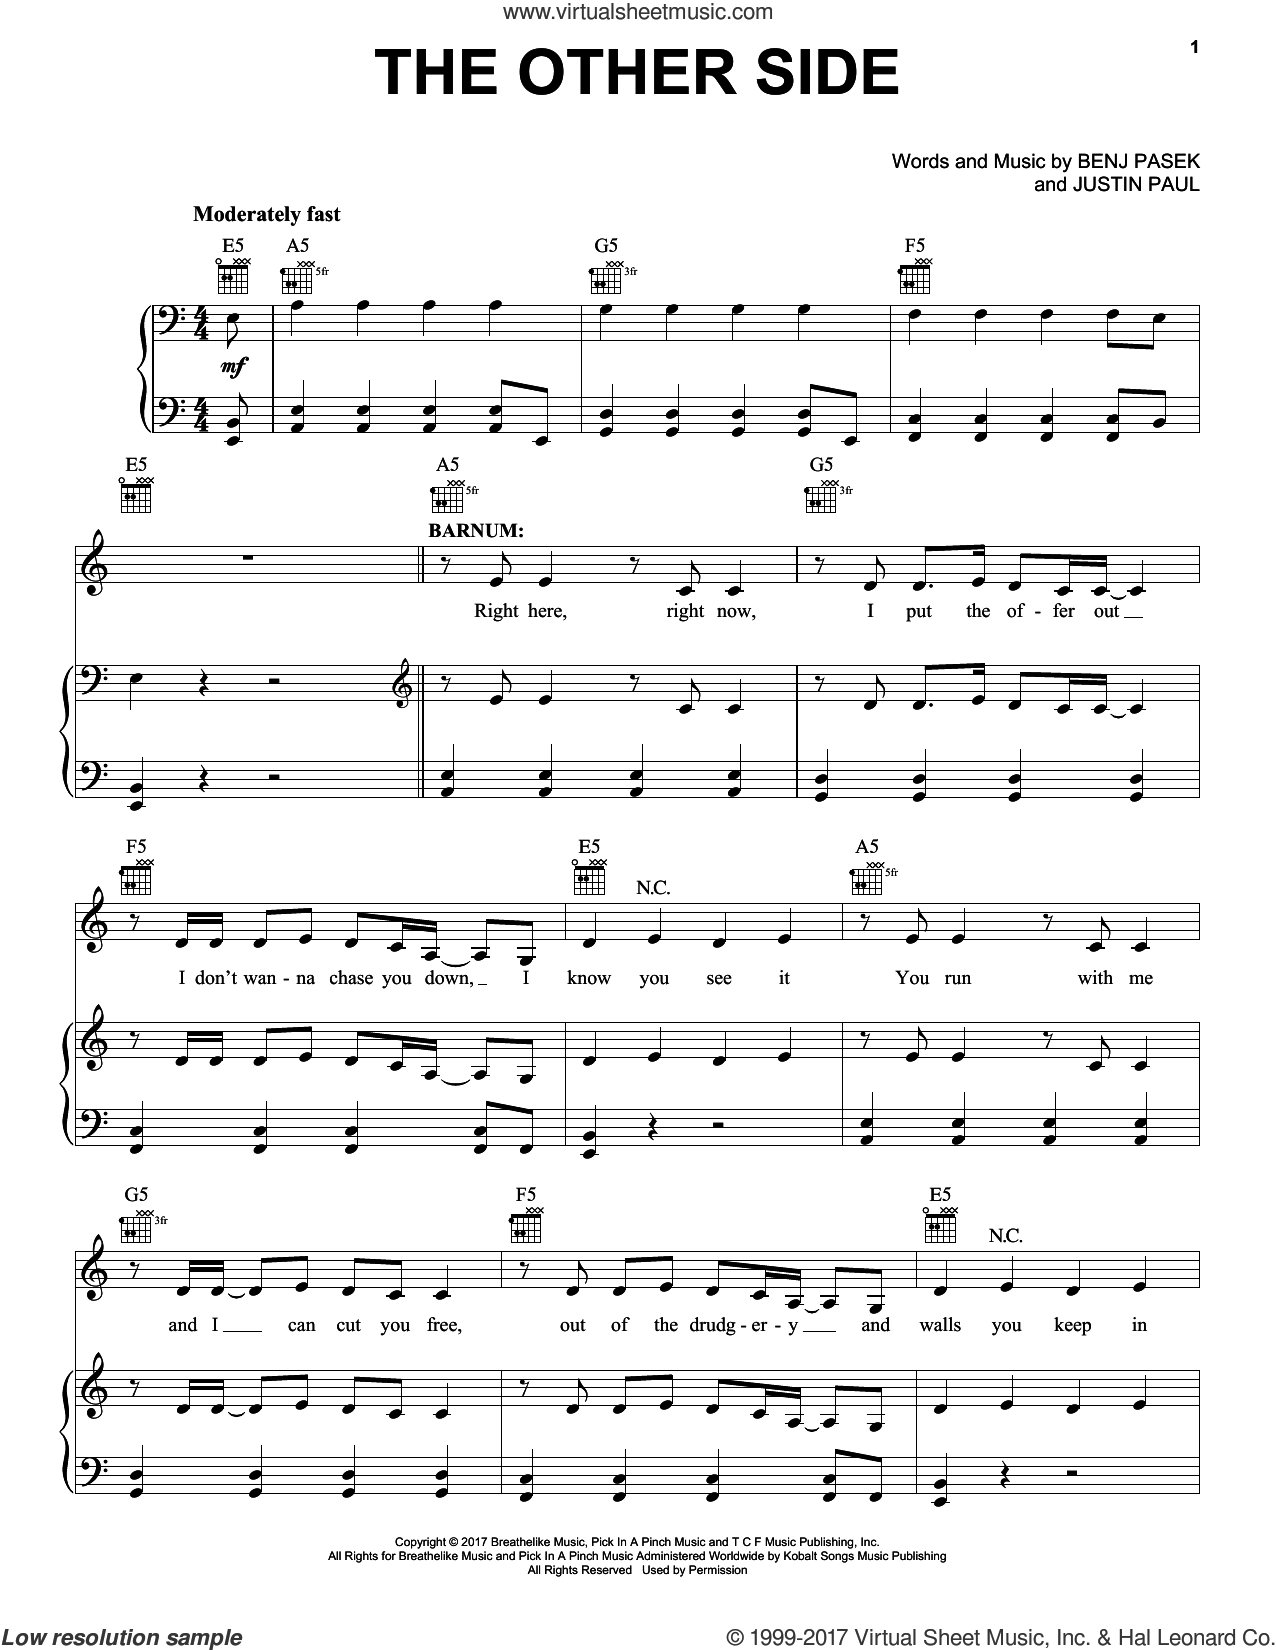 The Other Side sheet music for voice, piano or guitar by Pasek & Paul, Benj Pasek and Justin Paul, intermediate skill level